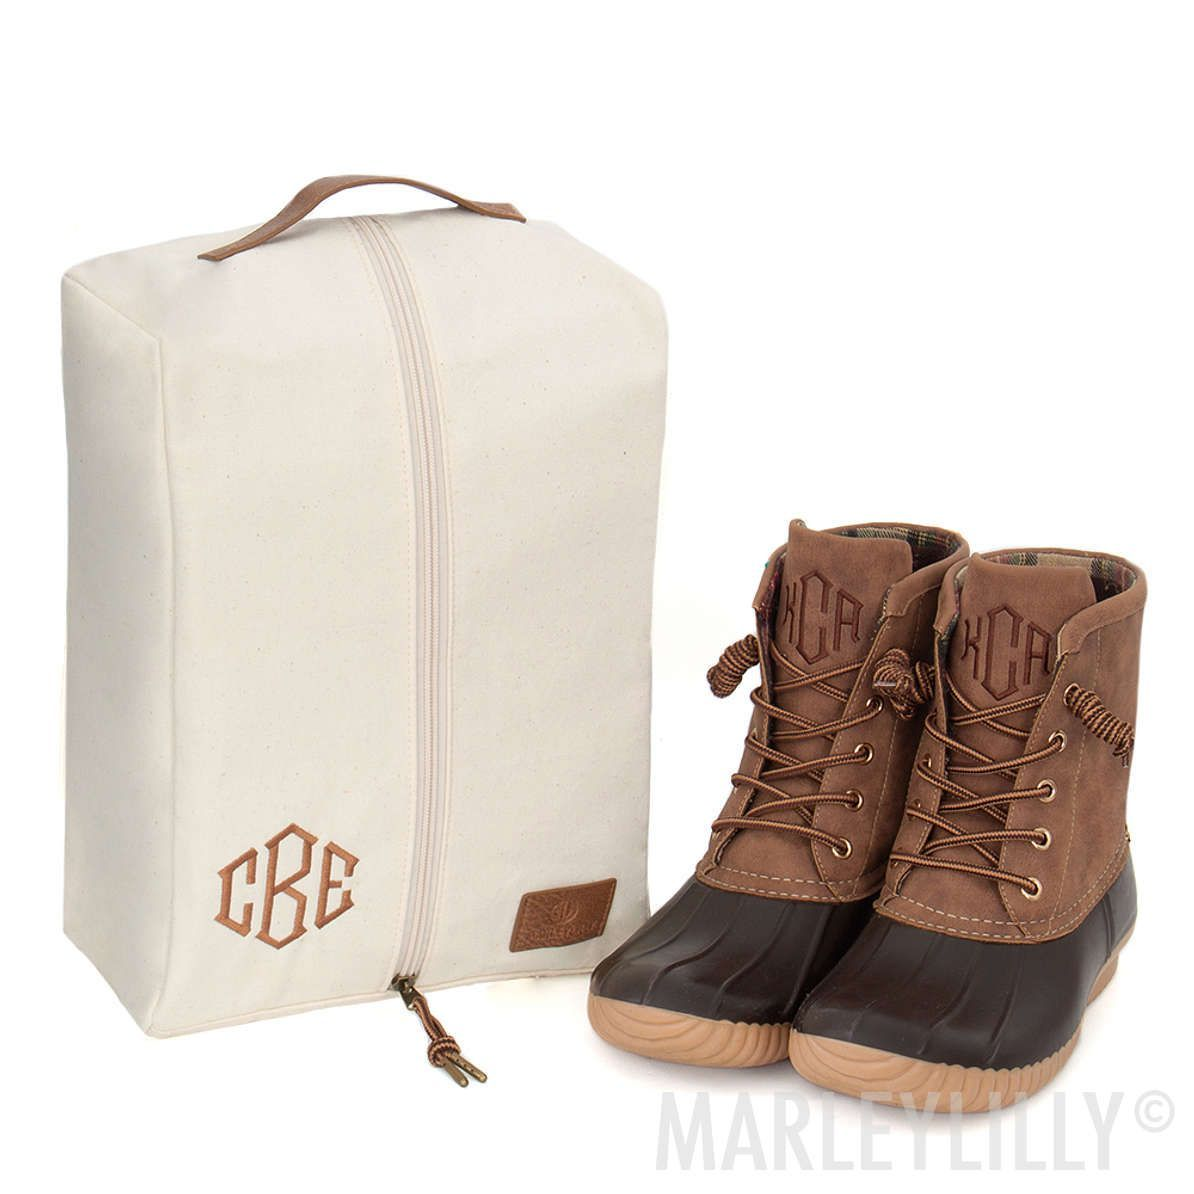 monogrammed travel shoe bag bag travel Monogrammed Travel Shoe Bag